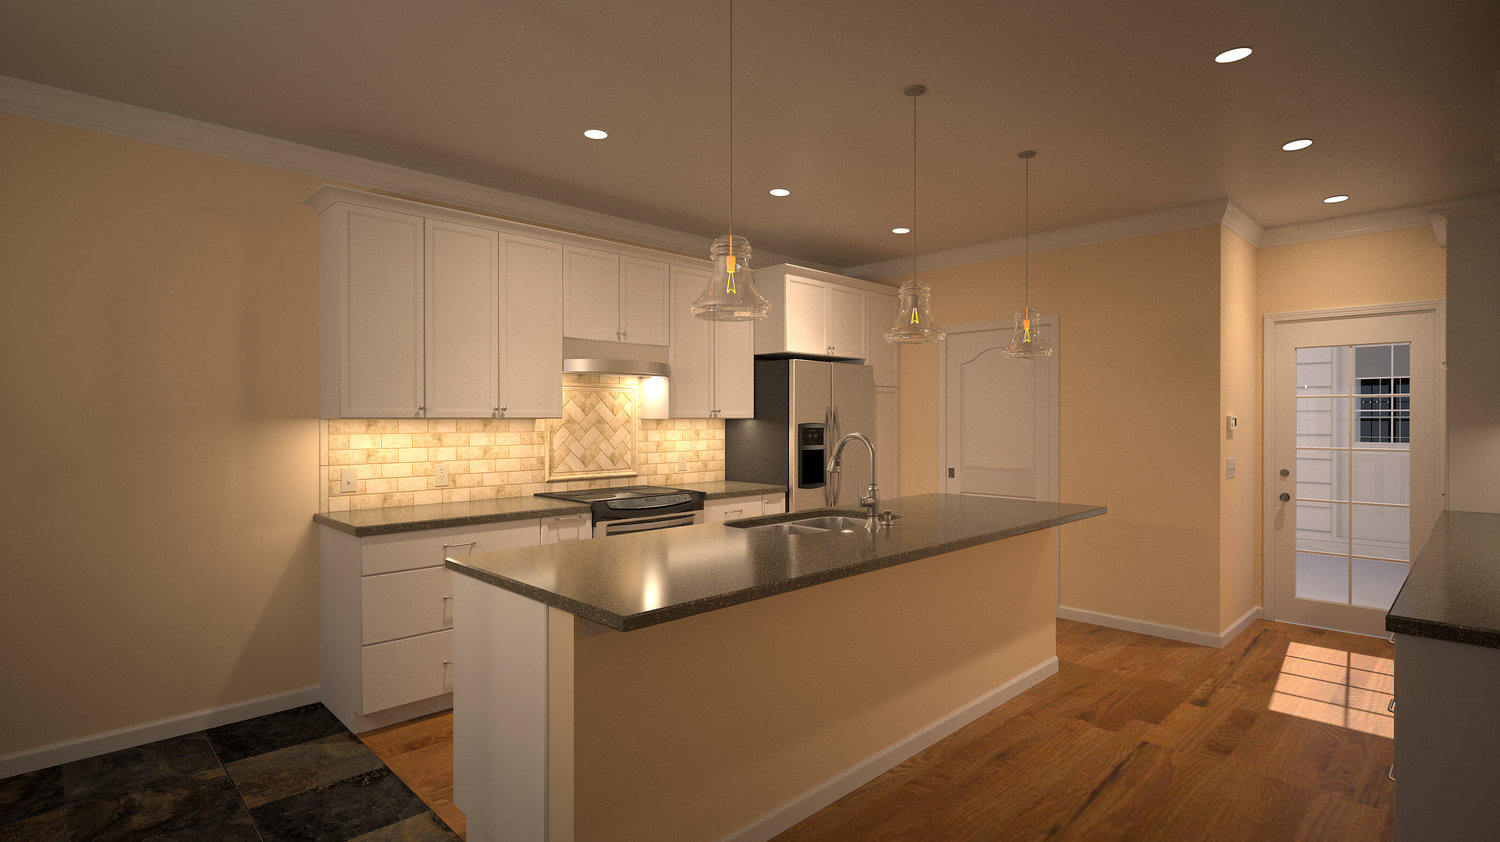 3D entertainer kitchen.jpg